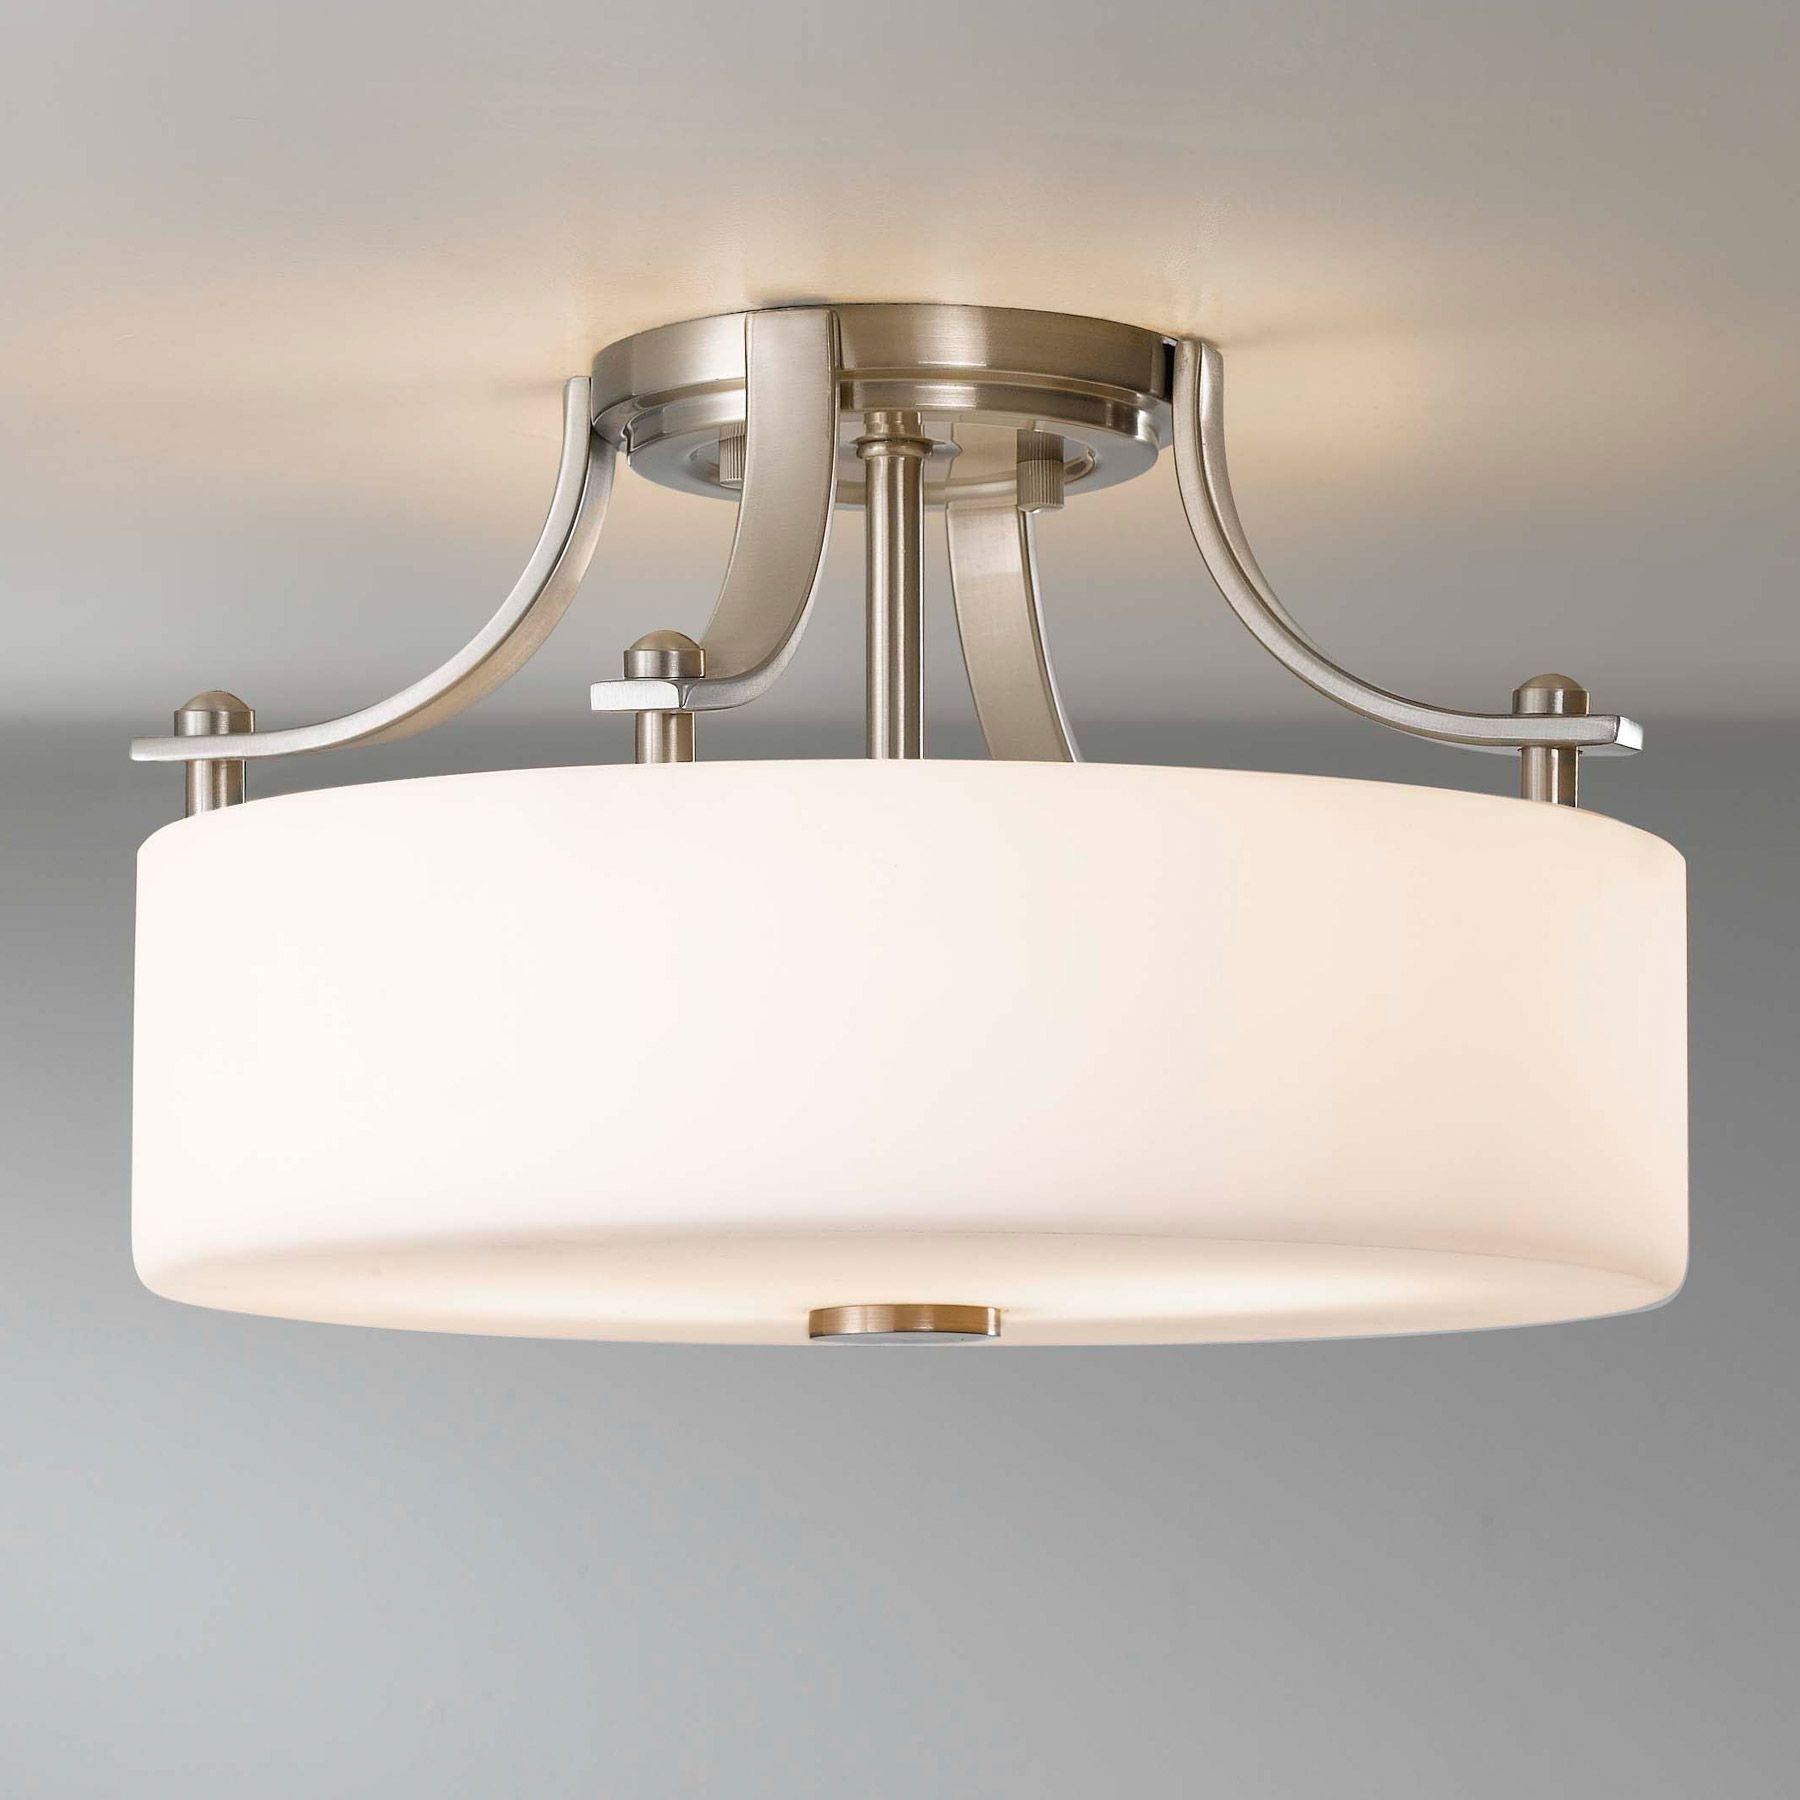 Living Room Ceiling Light White Flushmount Light Fixture Flush Mount Ceiling Light